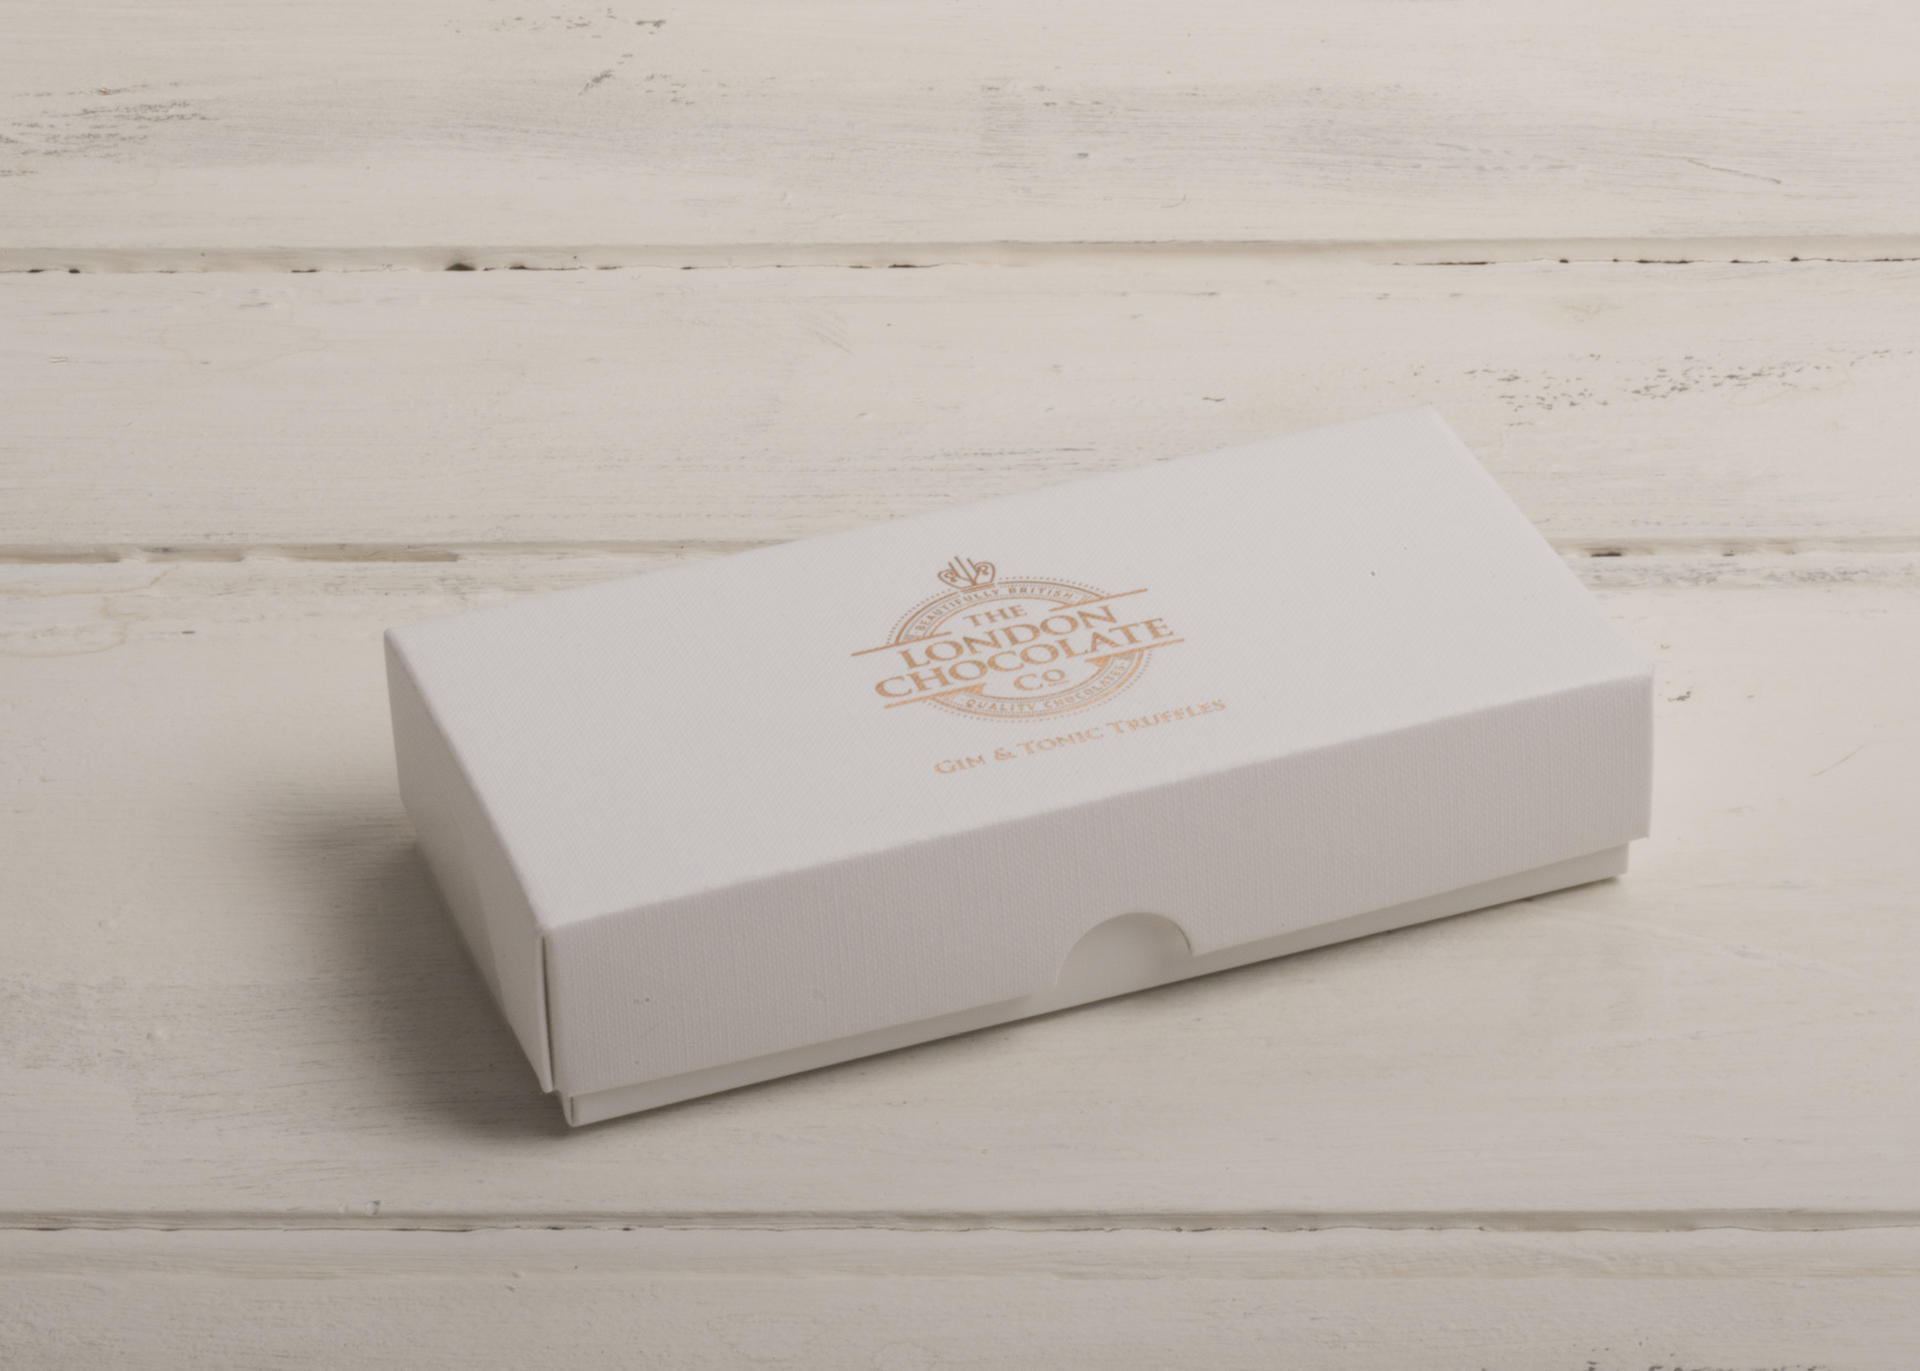 Gin and Tonic Truffle Gift Box by The London Chocolate Company